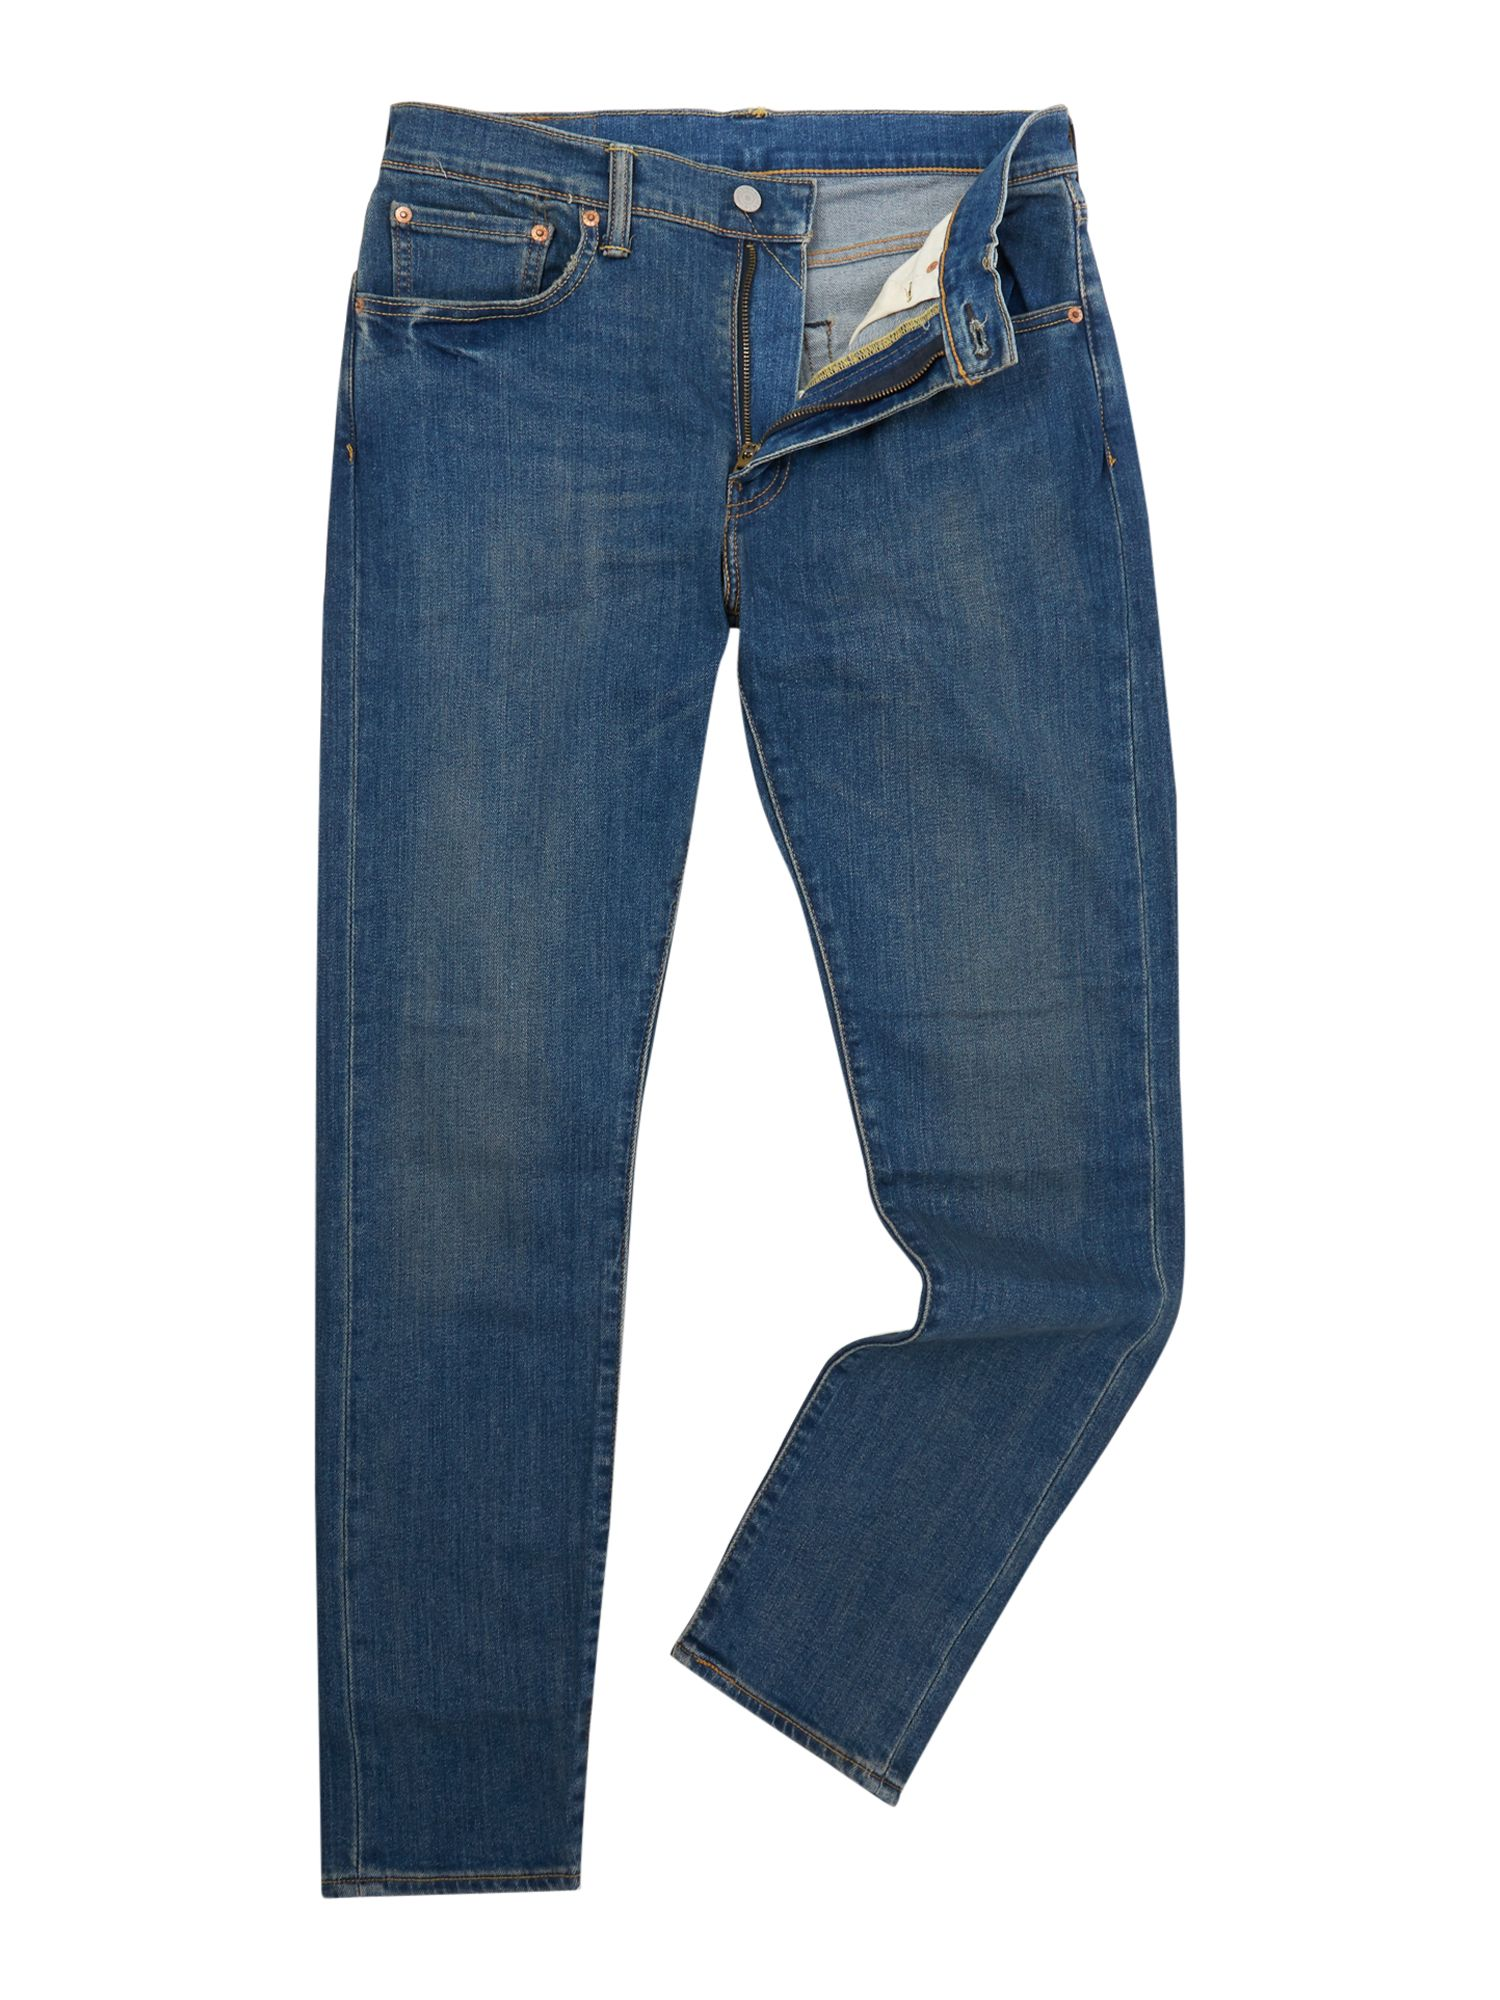 Levi S Men S Zip Fly Jeans At House Of Fraser # Fly Meubles Audio Bois